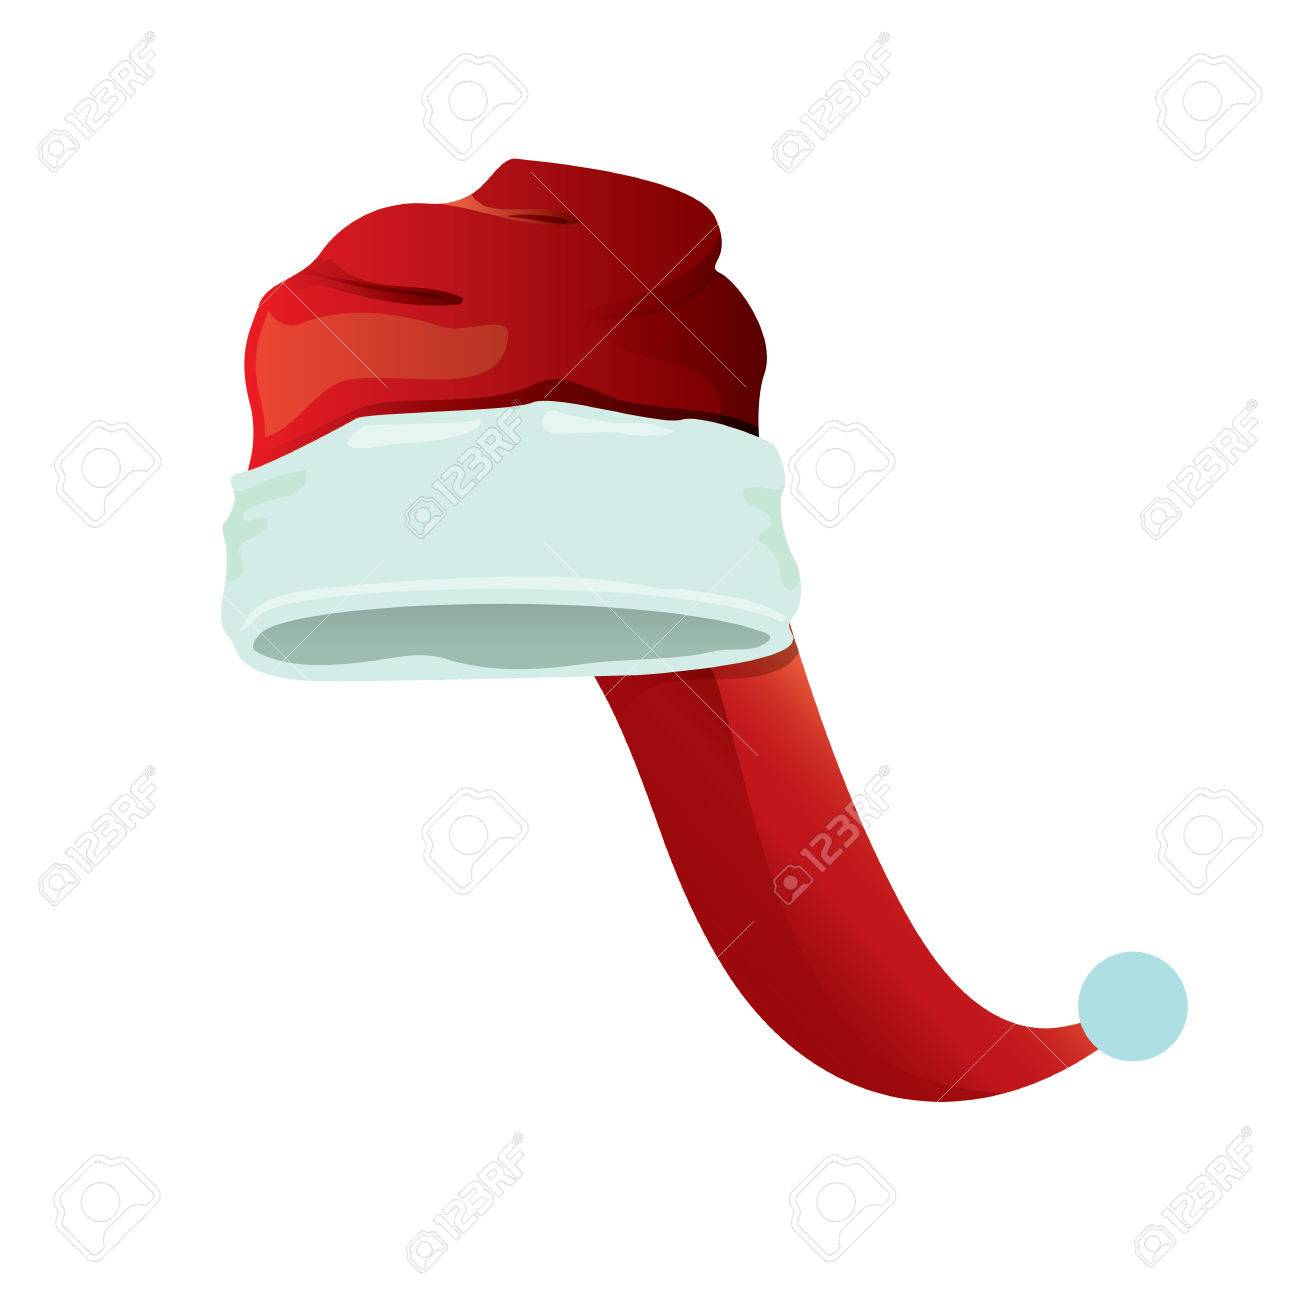 red cartoon santa claus hat isolated on white background. vector red santa  hat icon isolated 5845f5a7cd4c